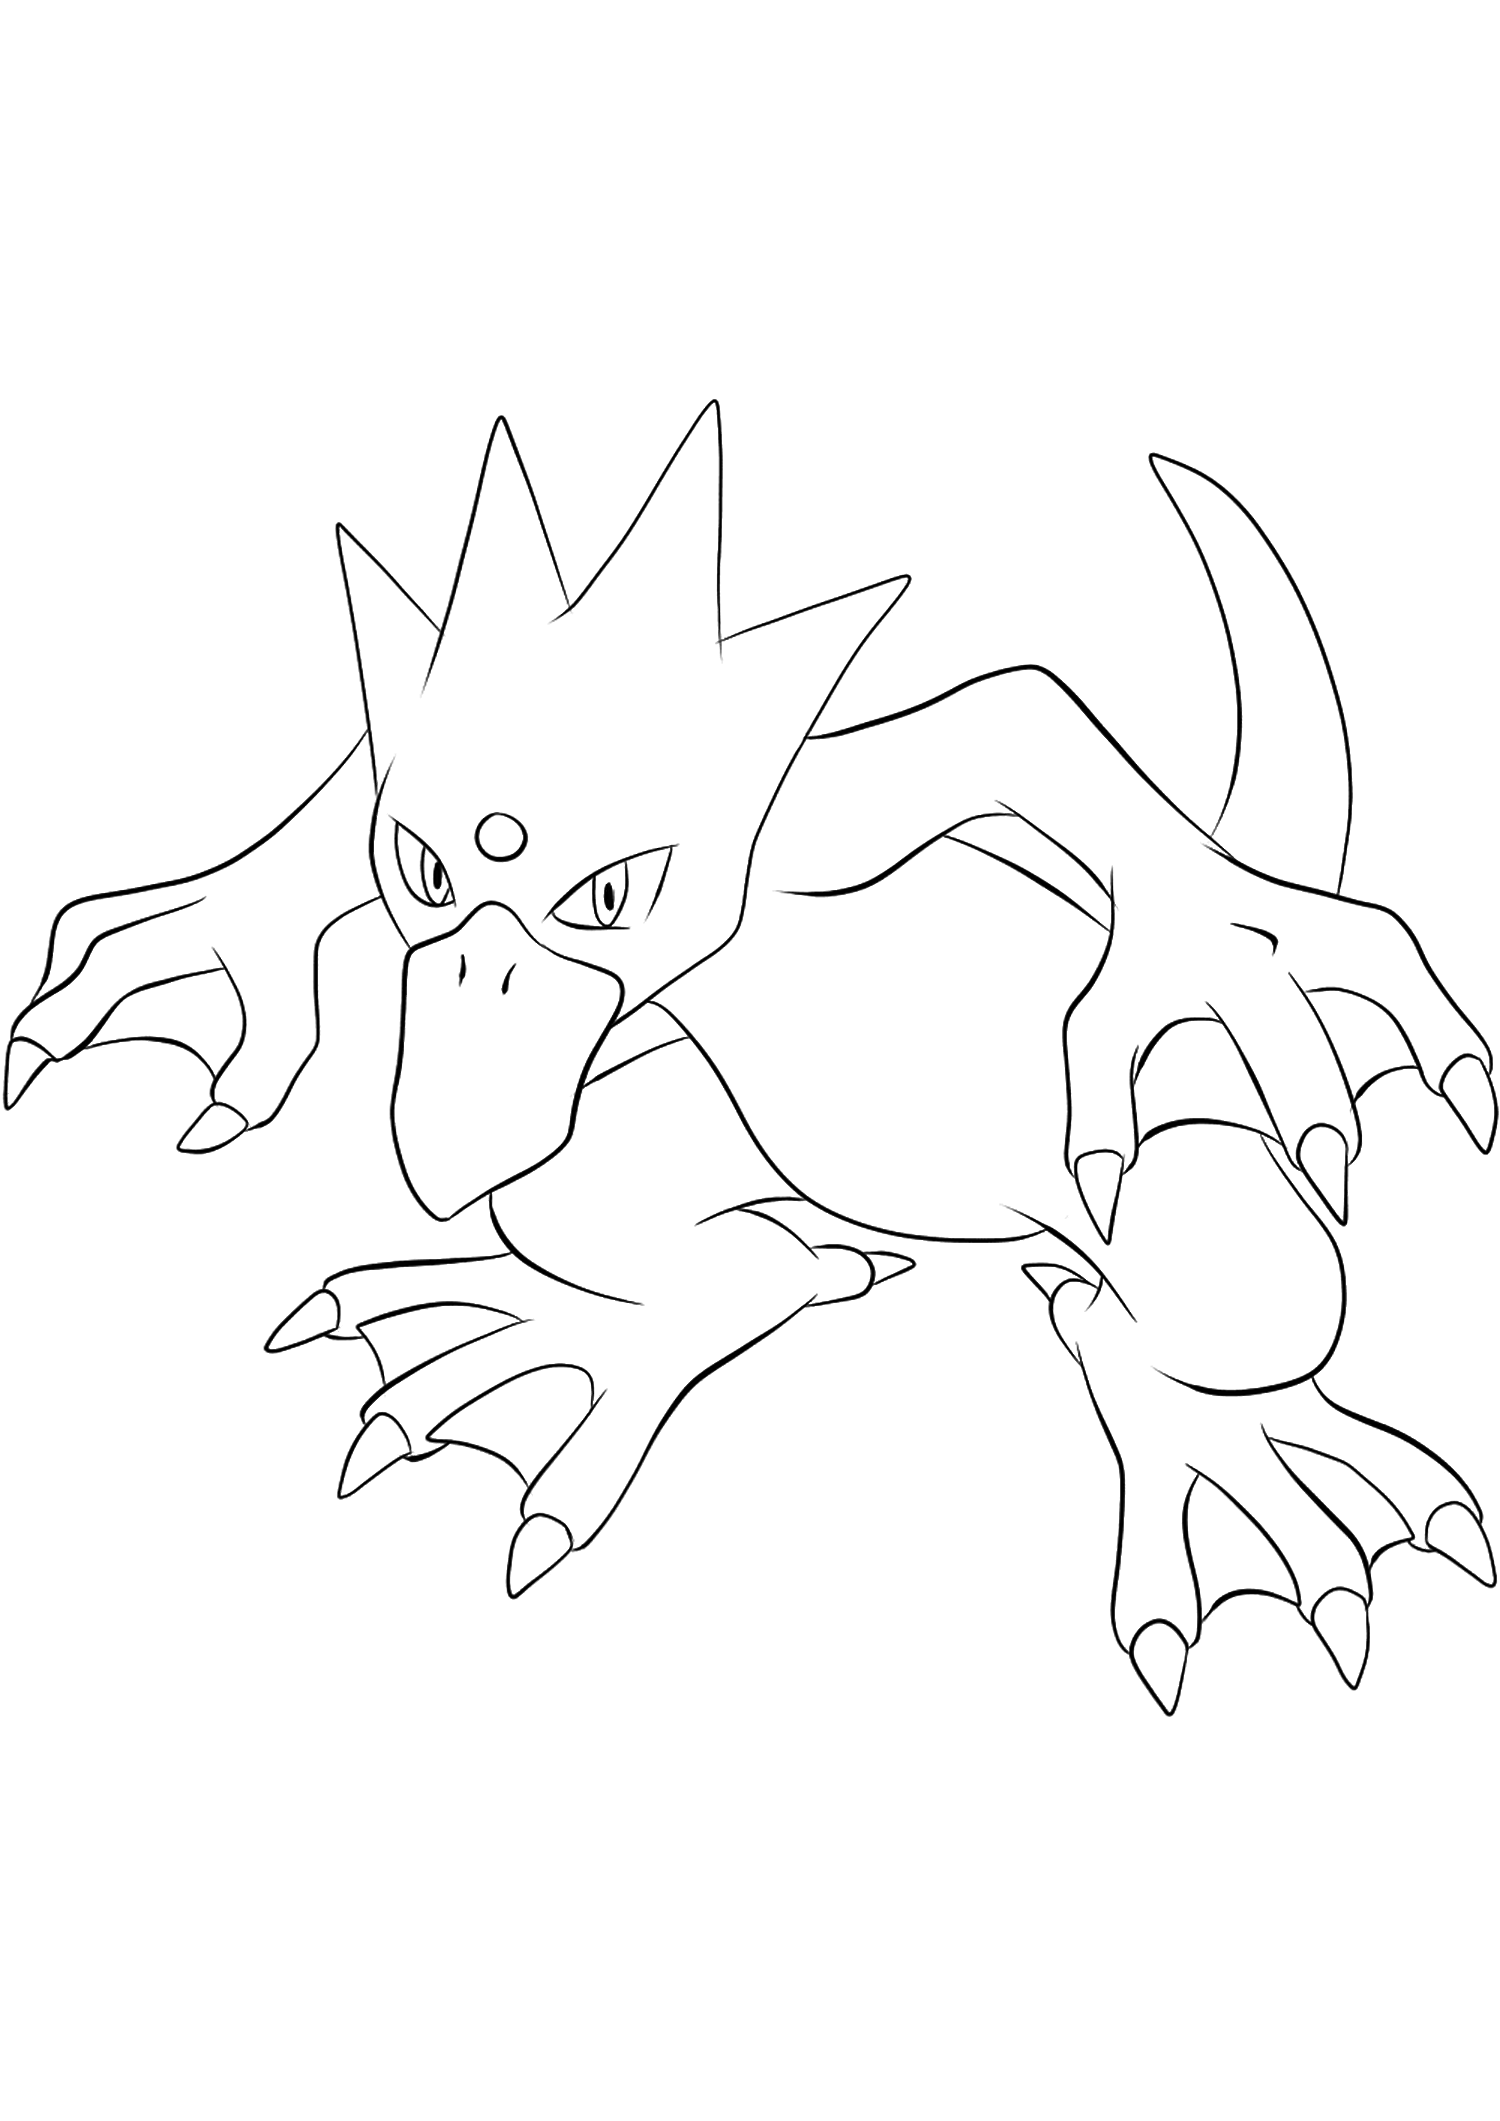 Golduck (No.55)Golduck Coloring page, Generation I Pokemon of type WaterOriginal image credit: Pokemon linearts by Lilly Gerbil on Deviantart.Permission:  All rights reserved © Pokemon company and Ken Sugimori.